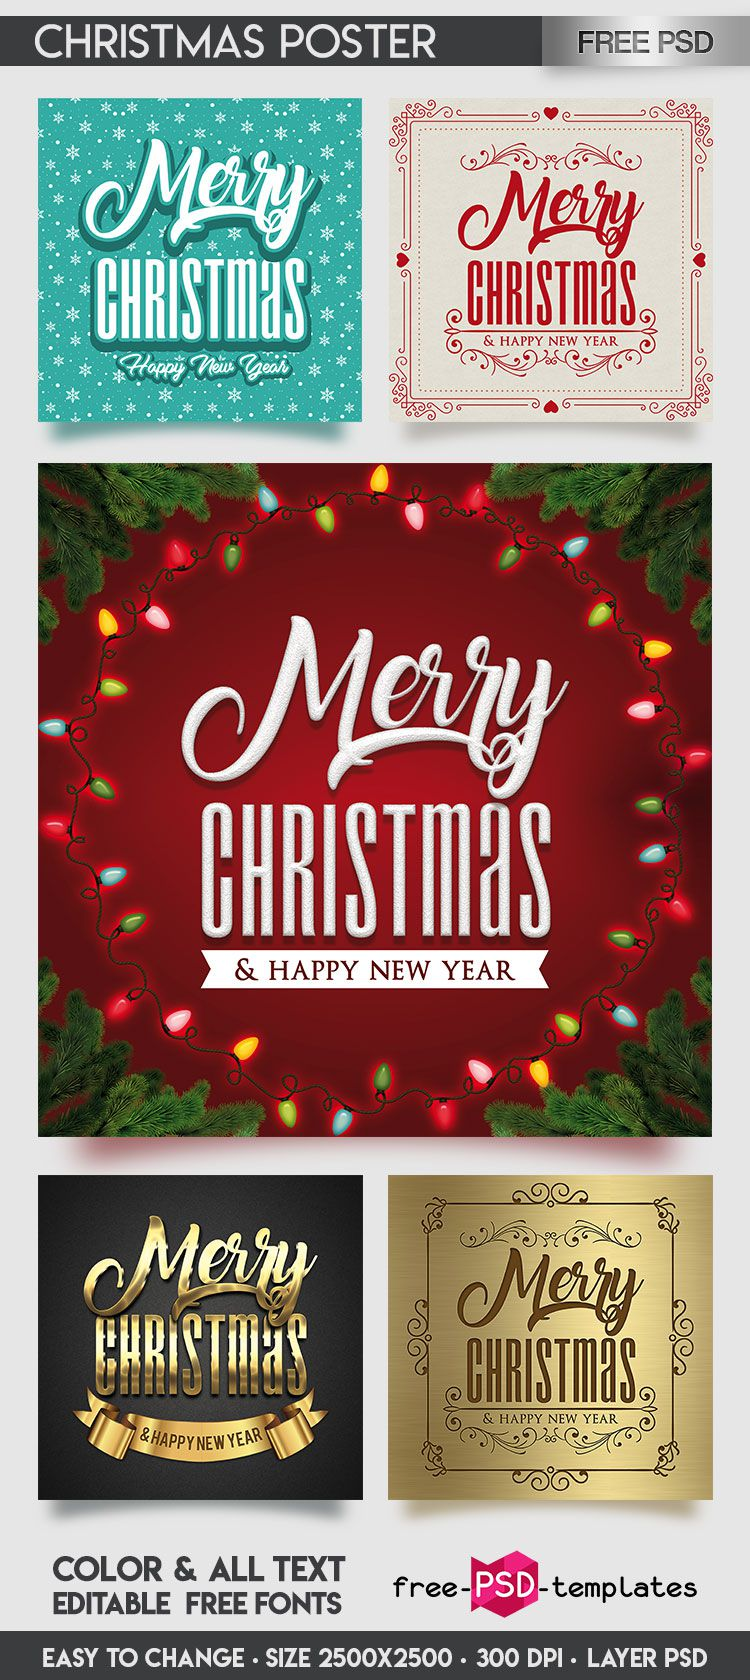 009 Fascinating Free Christma Poster Template Inspiration  Templates Psd Download Design WordFull